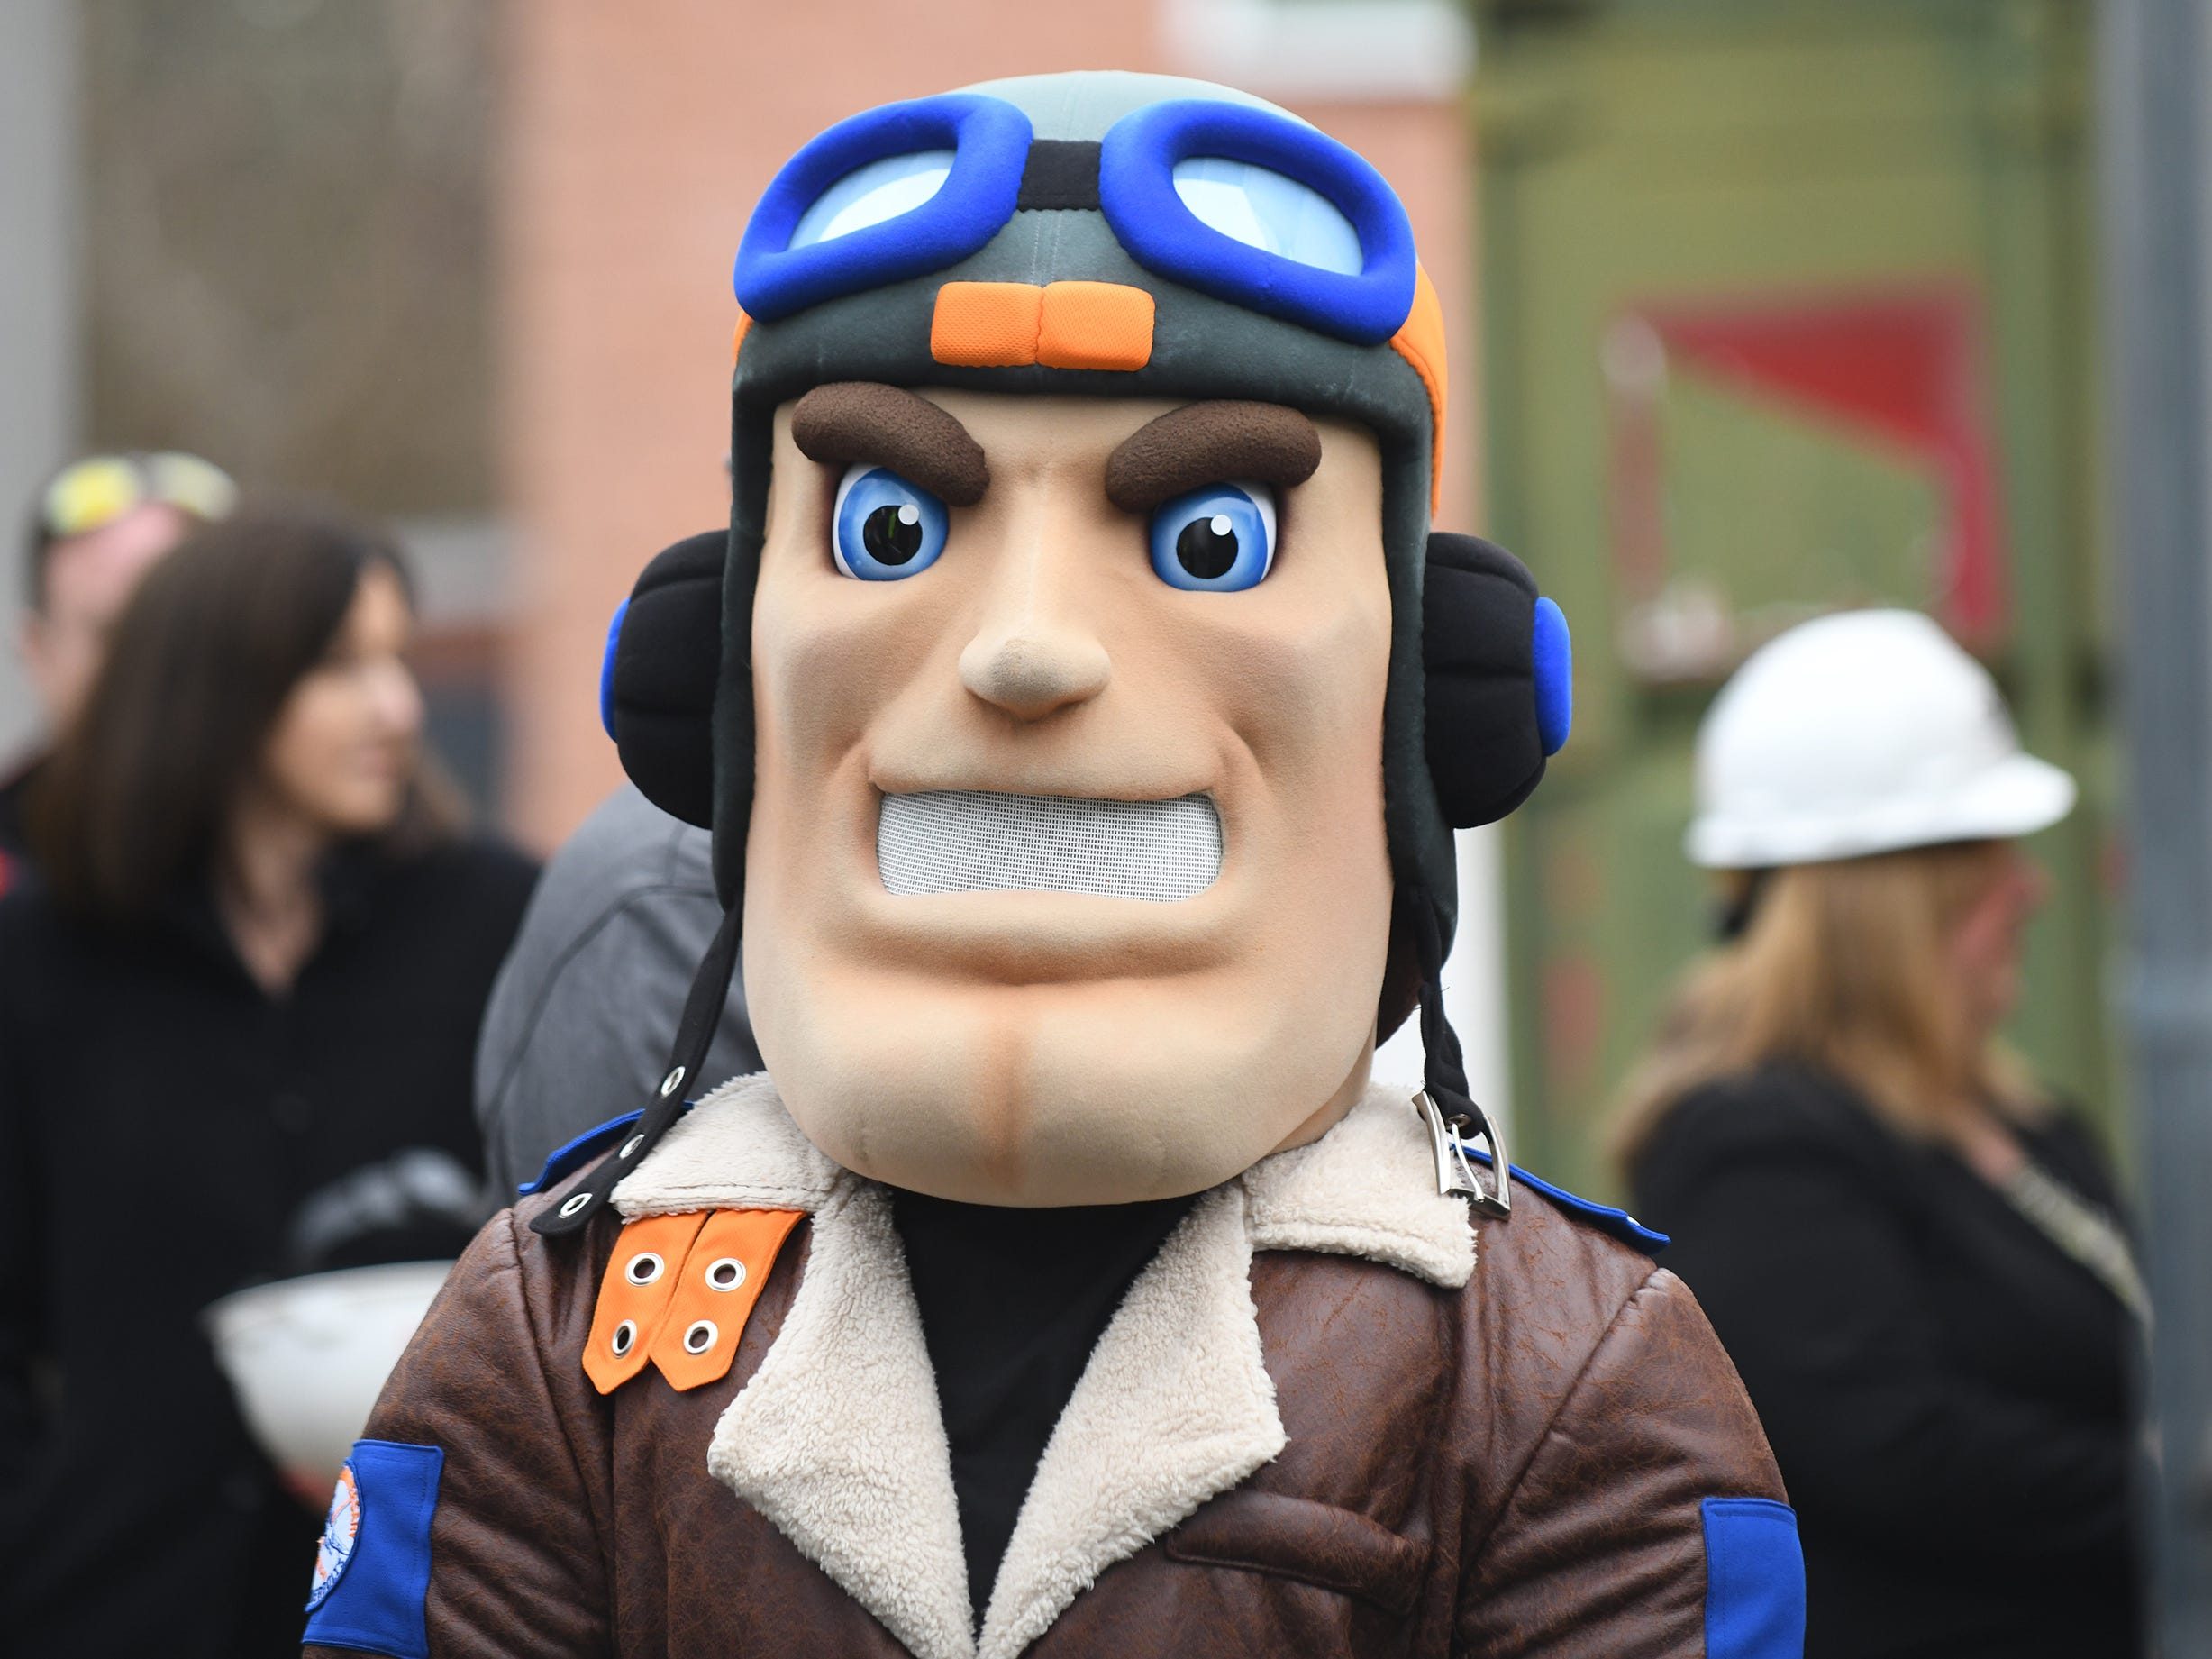 Maverick, the Millville High School mascot, took part in the groundbreaking ceremony on Thursday, Feb. 7, 2019.